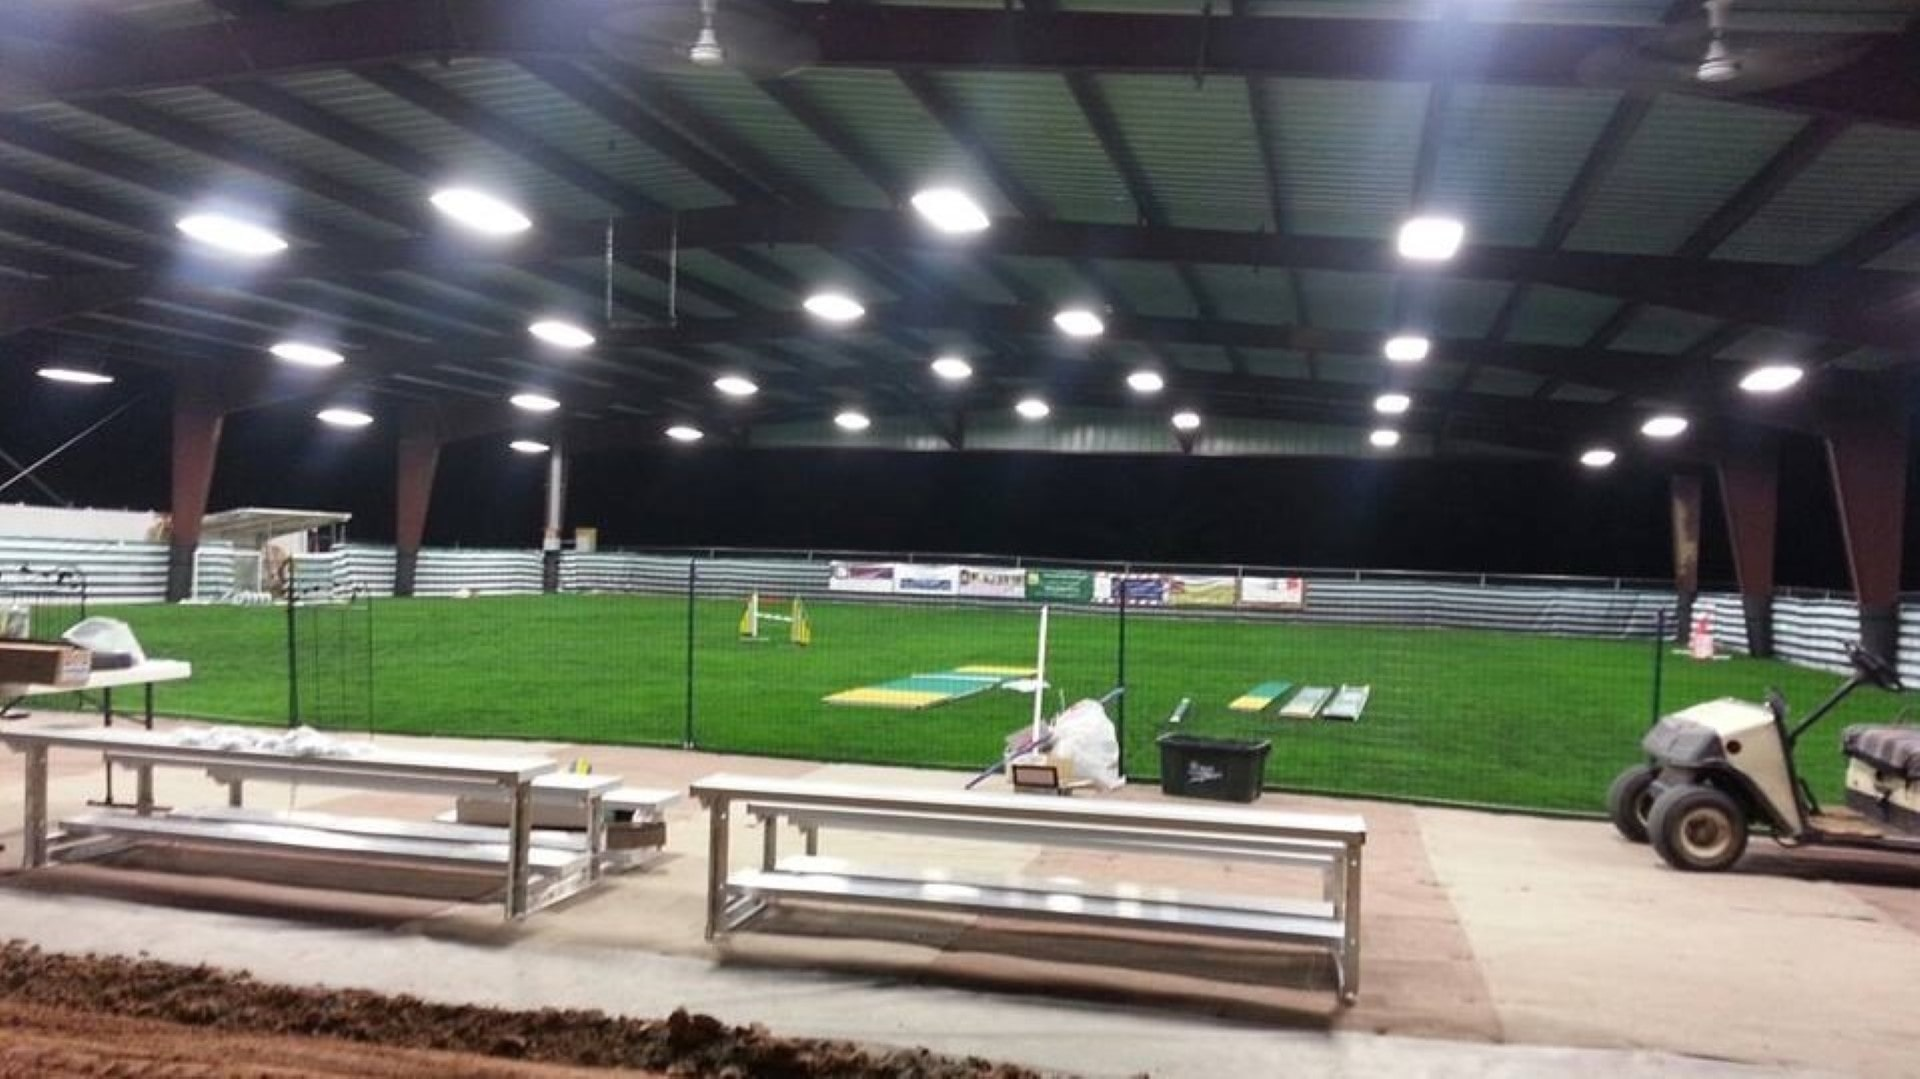 Open roof only metal building with partially sheeted gable ends at night with commercial lighting illuminating artificial turf.